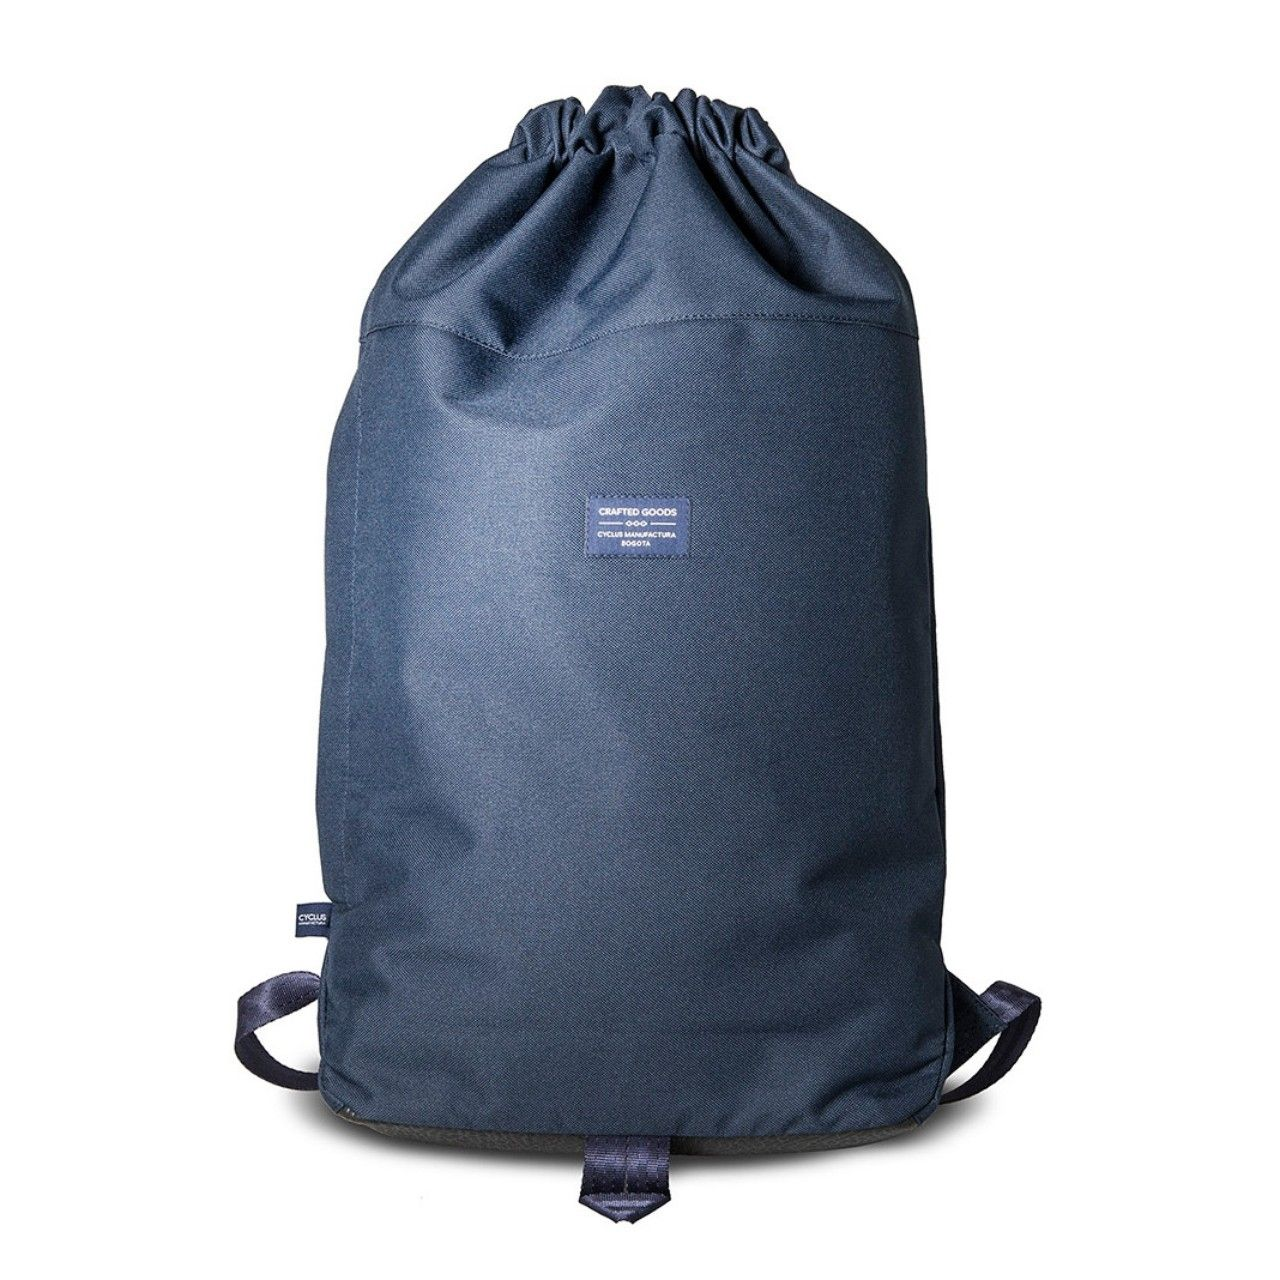 3bb2e10e7f The Crafted Goods Sorpresa Gym Sack is a remix of the traditional gym bag  its designers used while going to Sports classes in Switzerland